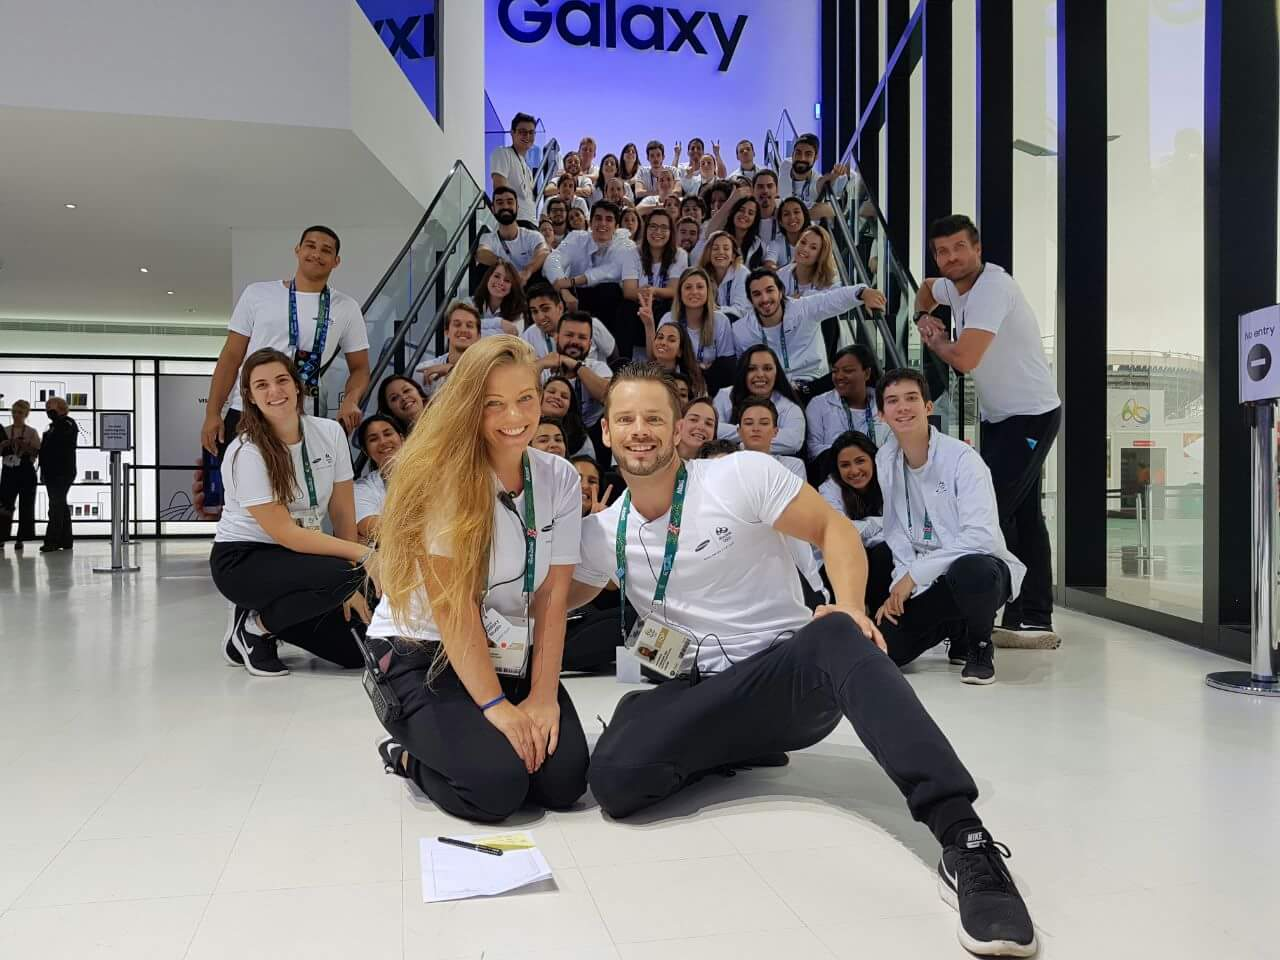 Group of Samsung Galaxy staff